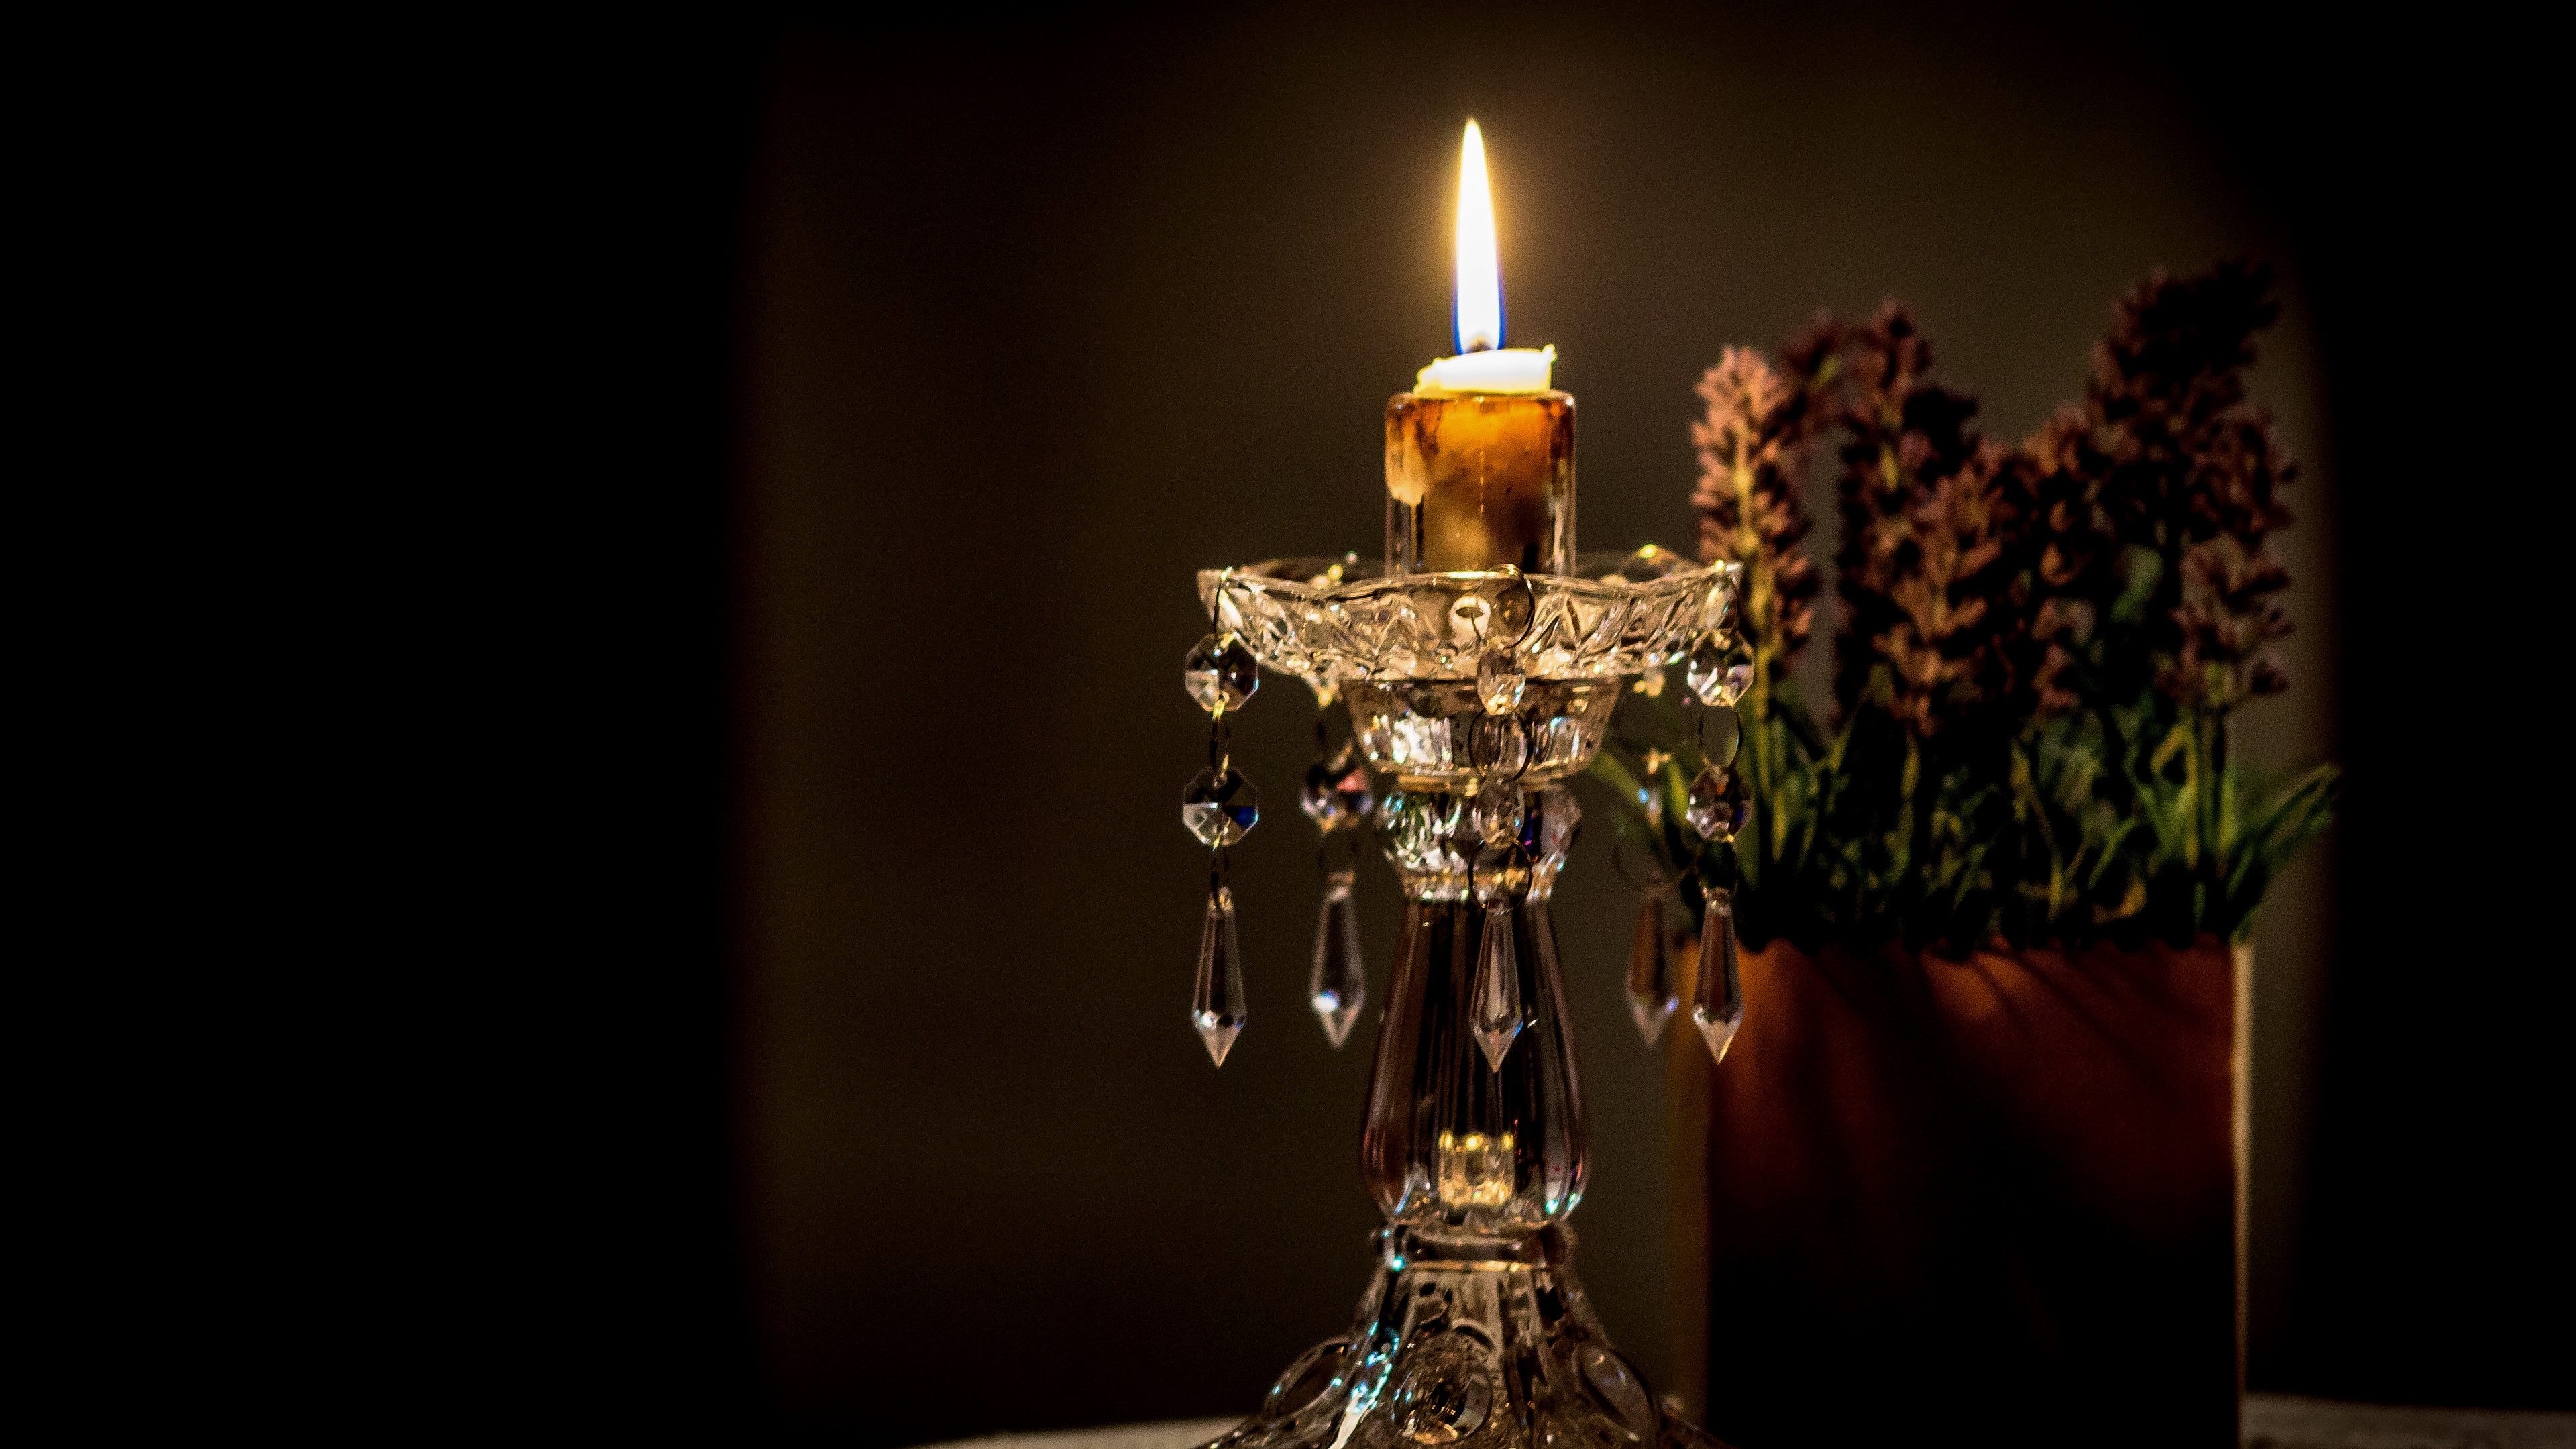 Candlestick and lavander wallpaper 3840x2160